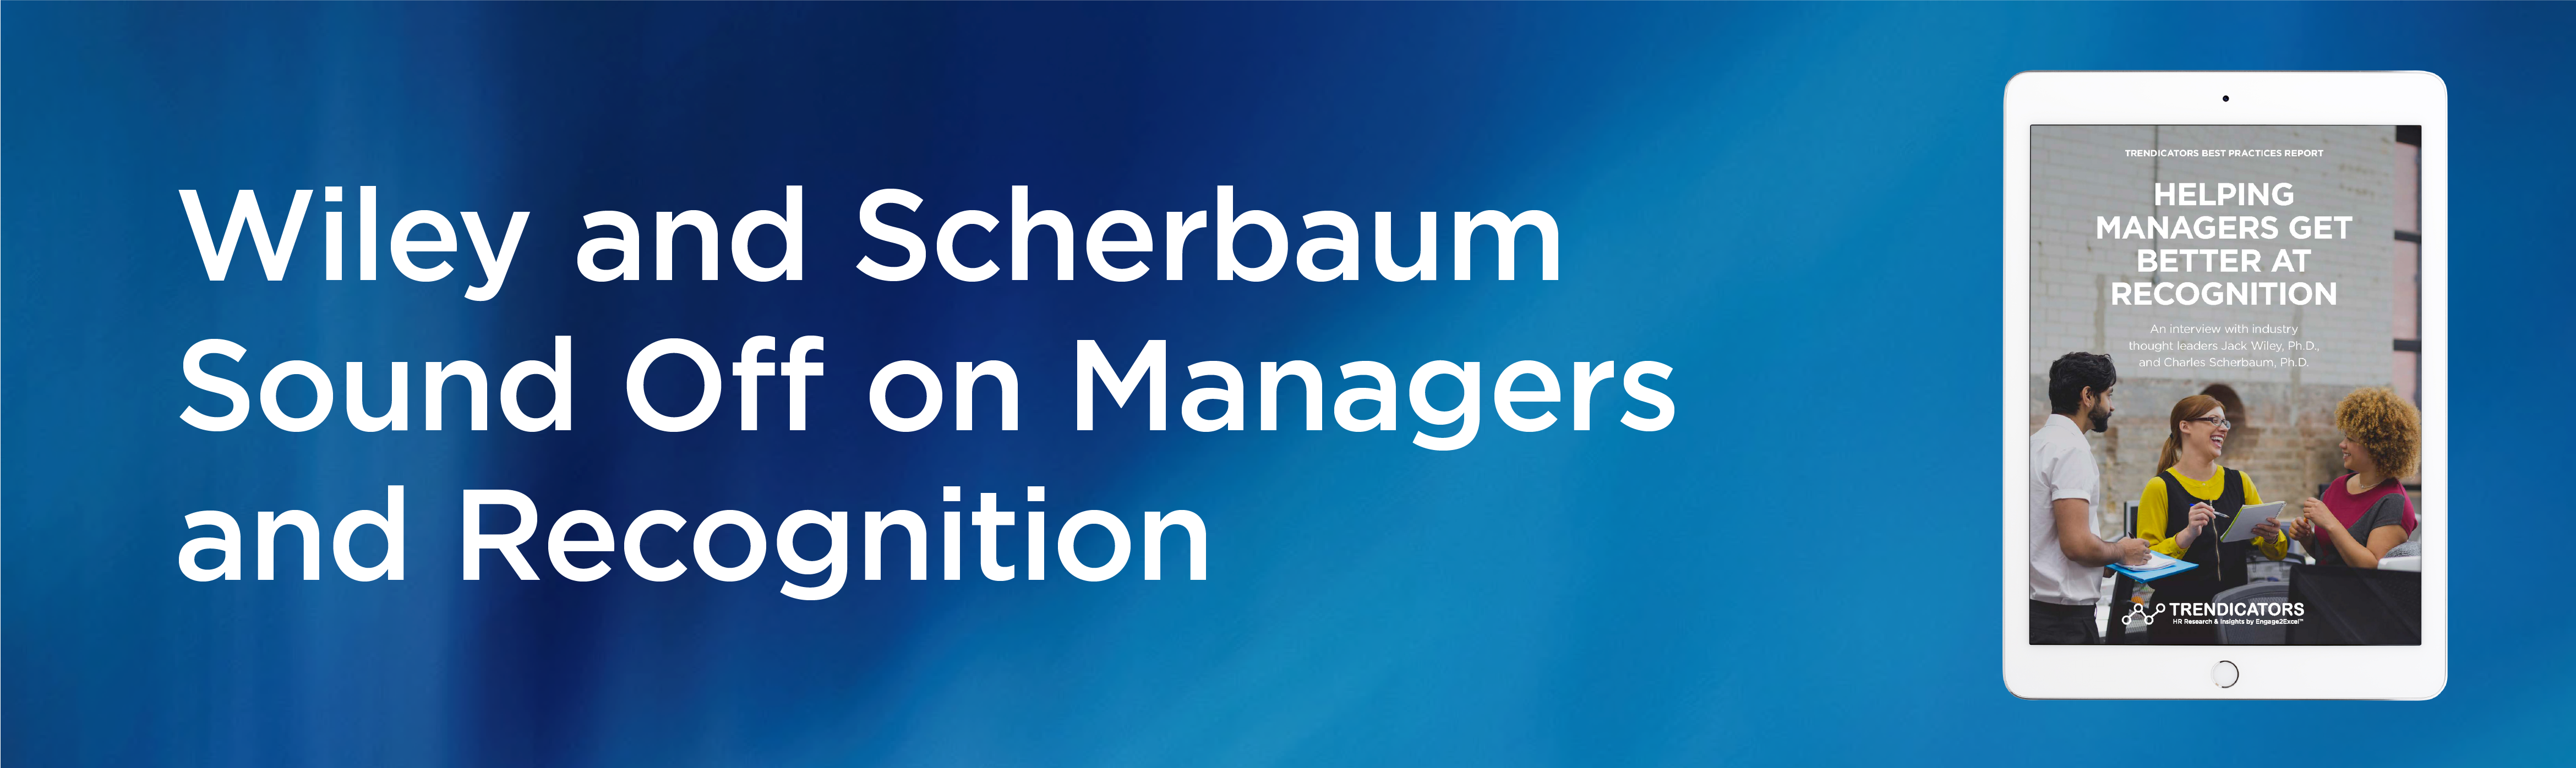 Wiley and Scherbaum Sound Off on Managers and Recognition